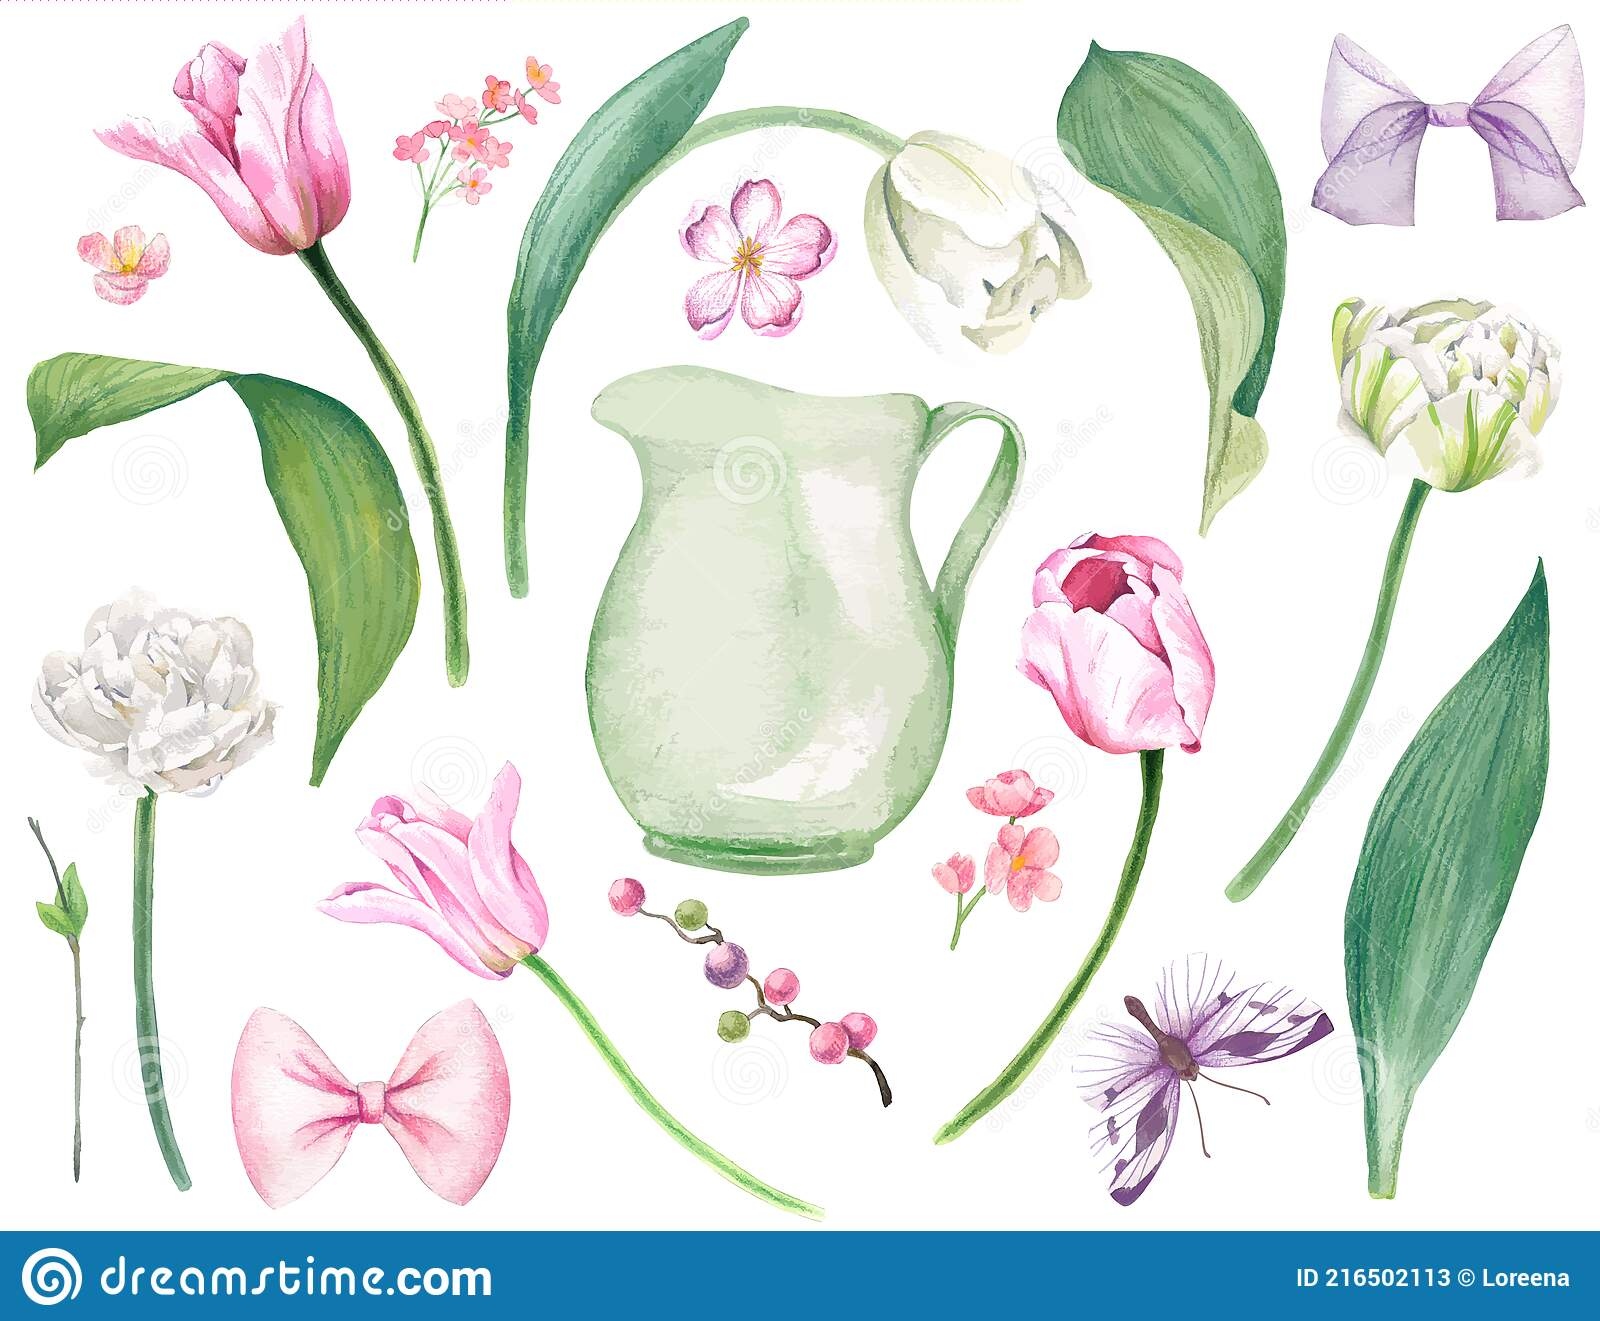 Tiny Tulips Stock Illustrations 85 Tiny Tulips Stock Illustrations Vectors Clipart Dreamstime